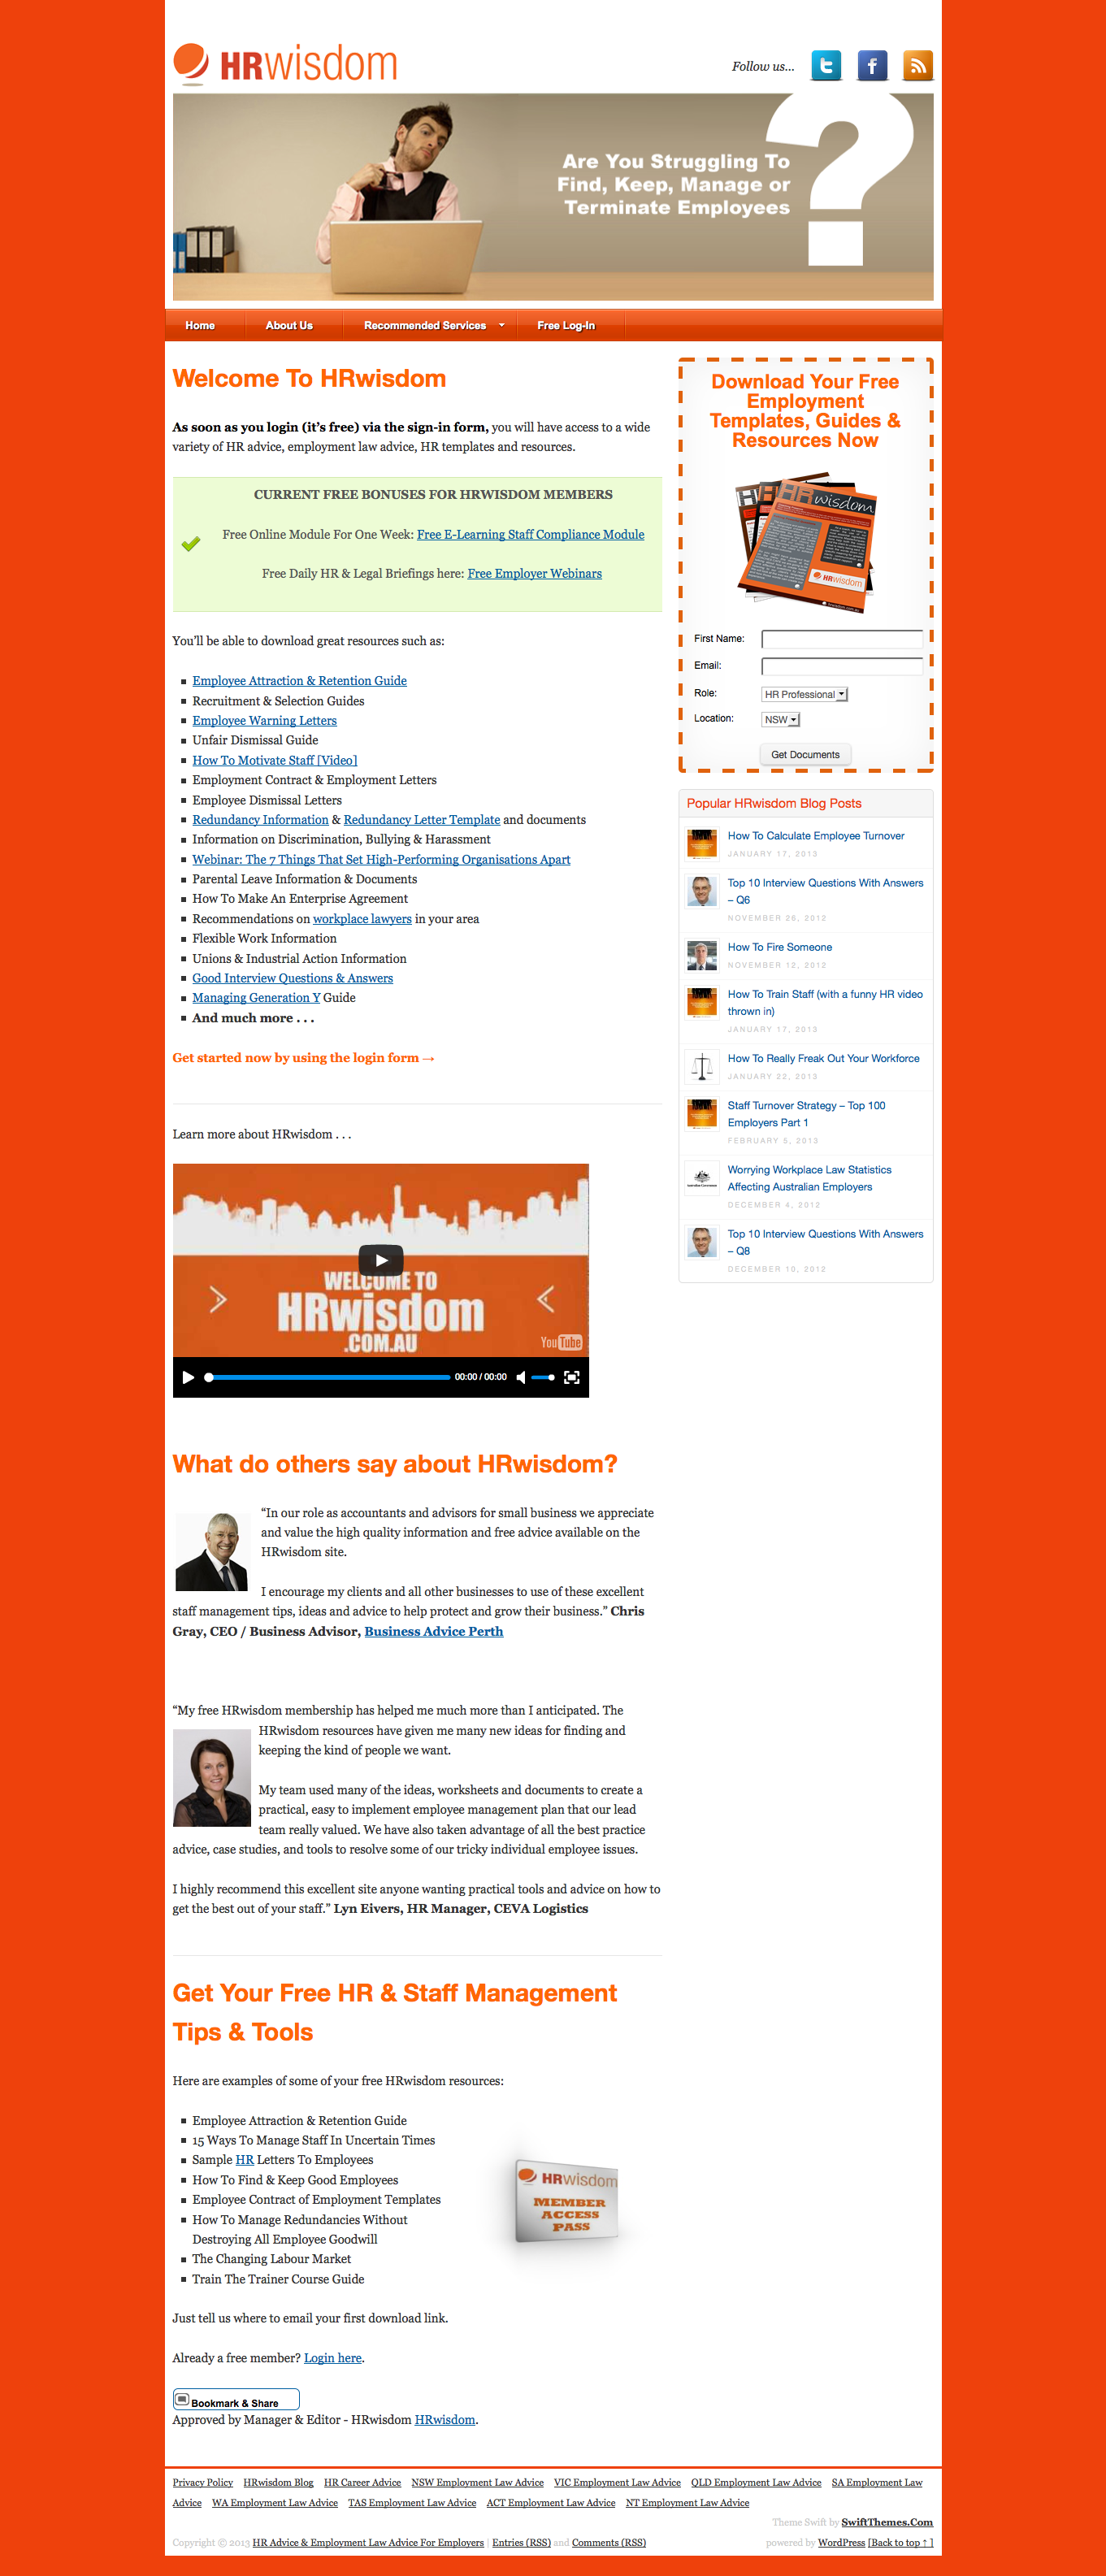 A simple corporate website with static front page.